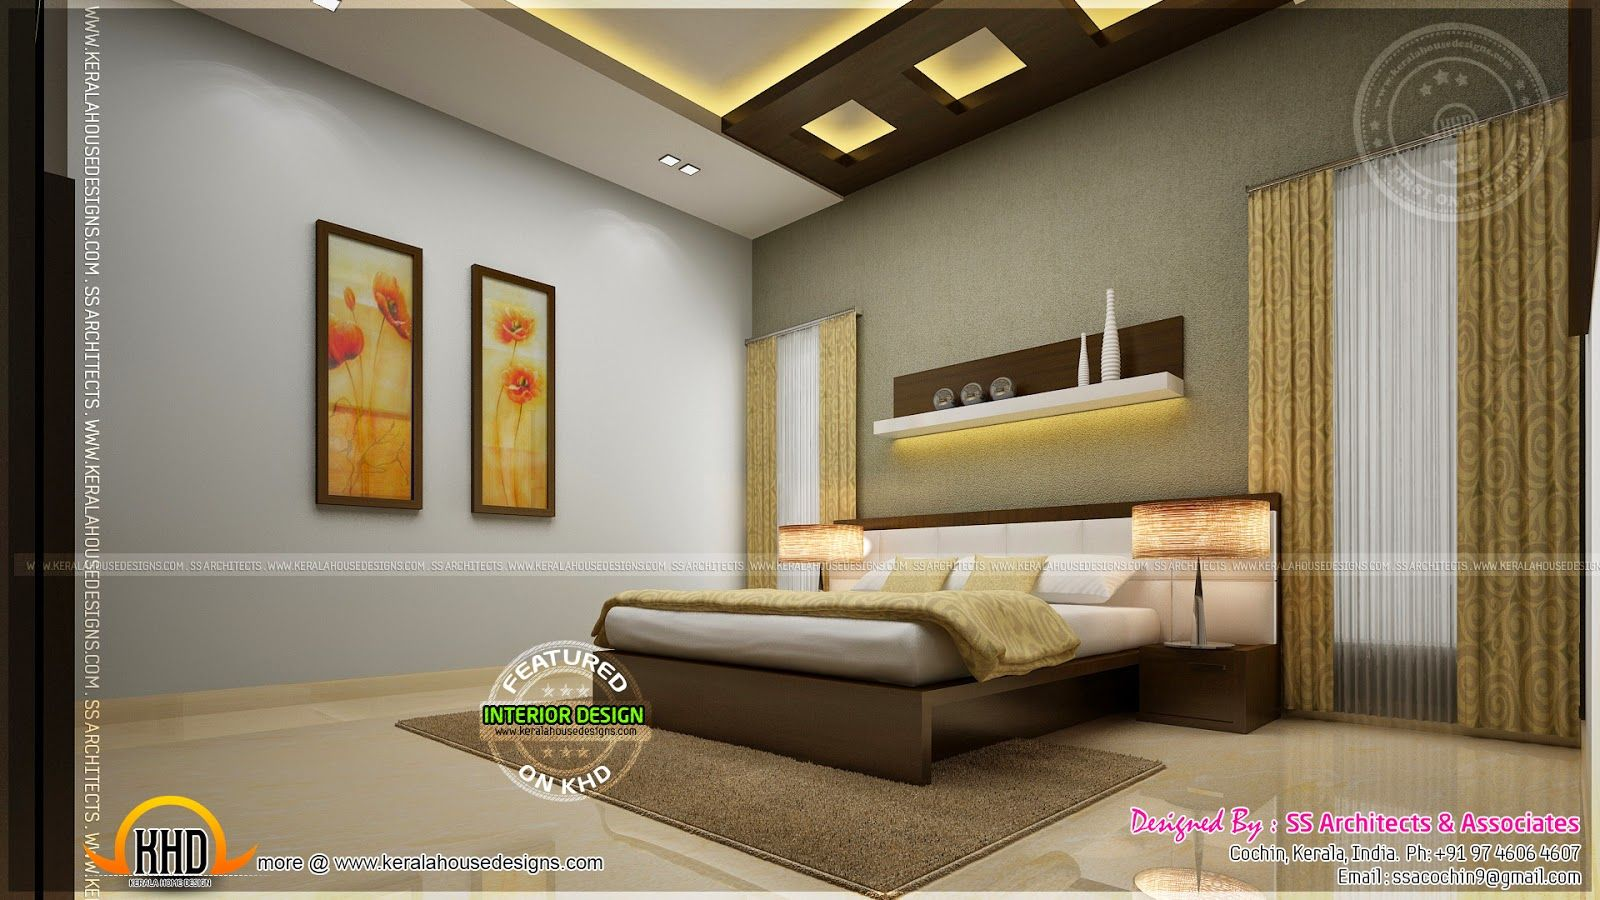 indian master bedroom interior design - Google Search  Bedroom